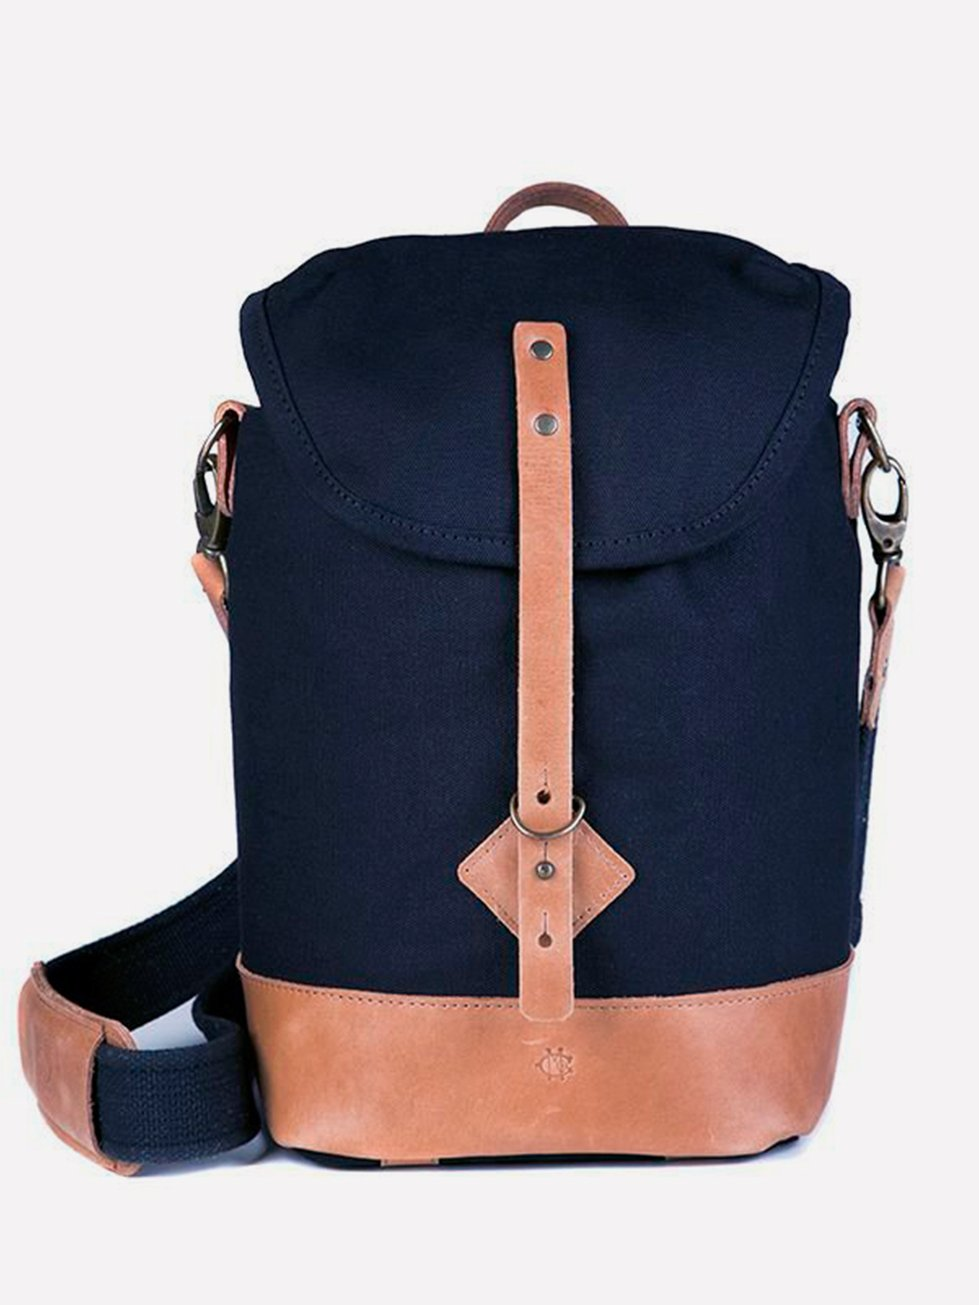 Foto do Mochila Cutterman Co. Growler Bag - Navy